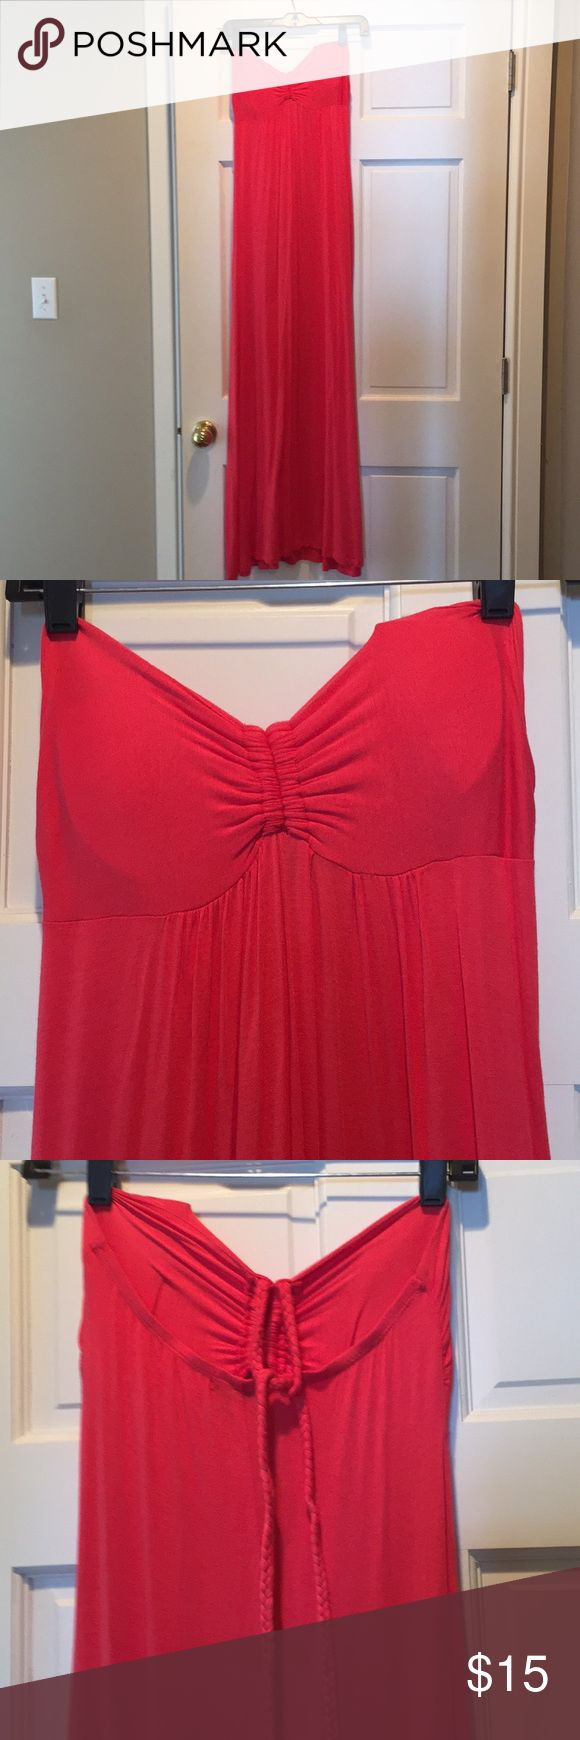 Women's Body Central maxi dress Comfortable maxi dress with no sleeves. Color is more coral than orange. Body Central Dresses Maxi